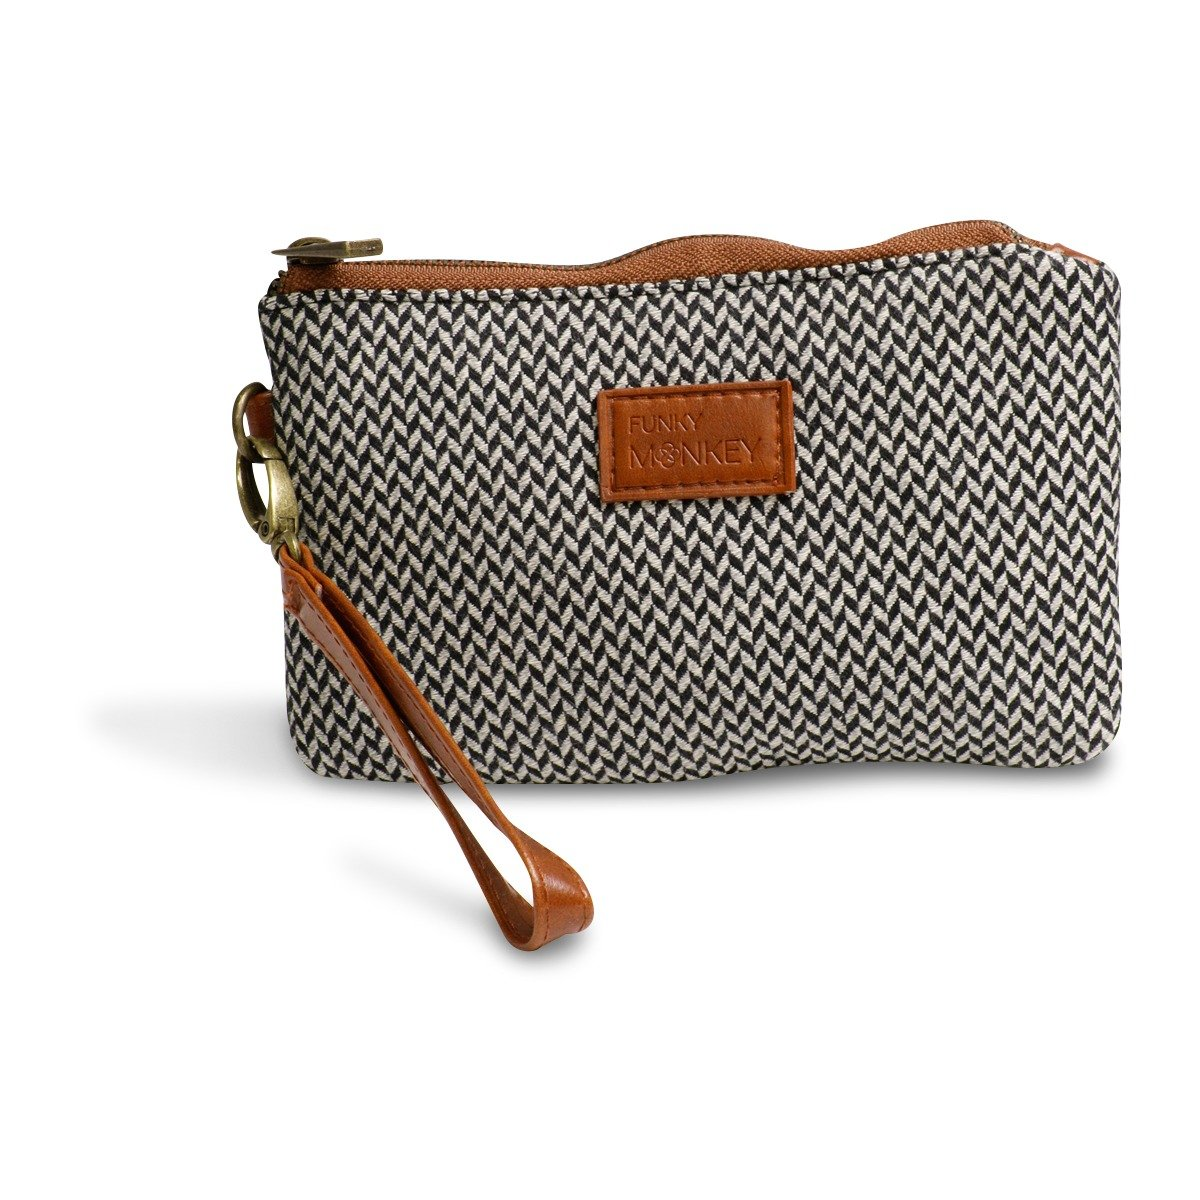 Wristlet Wallet Clutch - Phone Purse Handbag - Small Size - Black & Gray Herringbone Style - Funky Monkey Fashion (Medium)